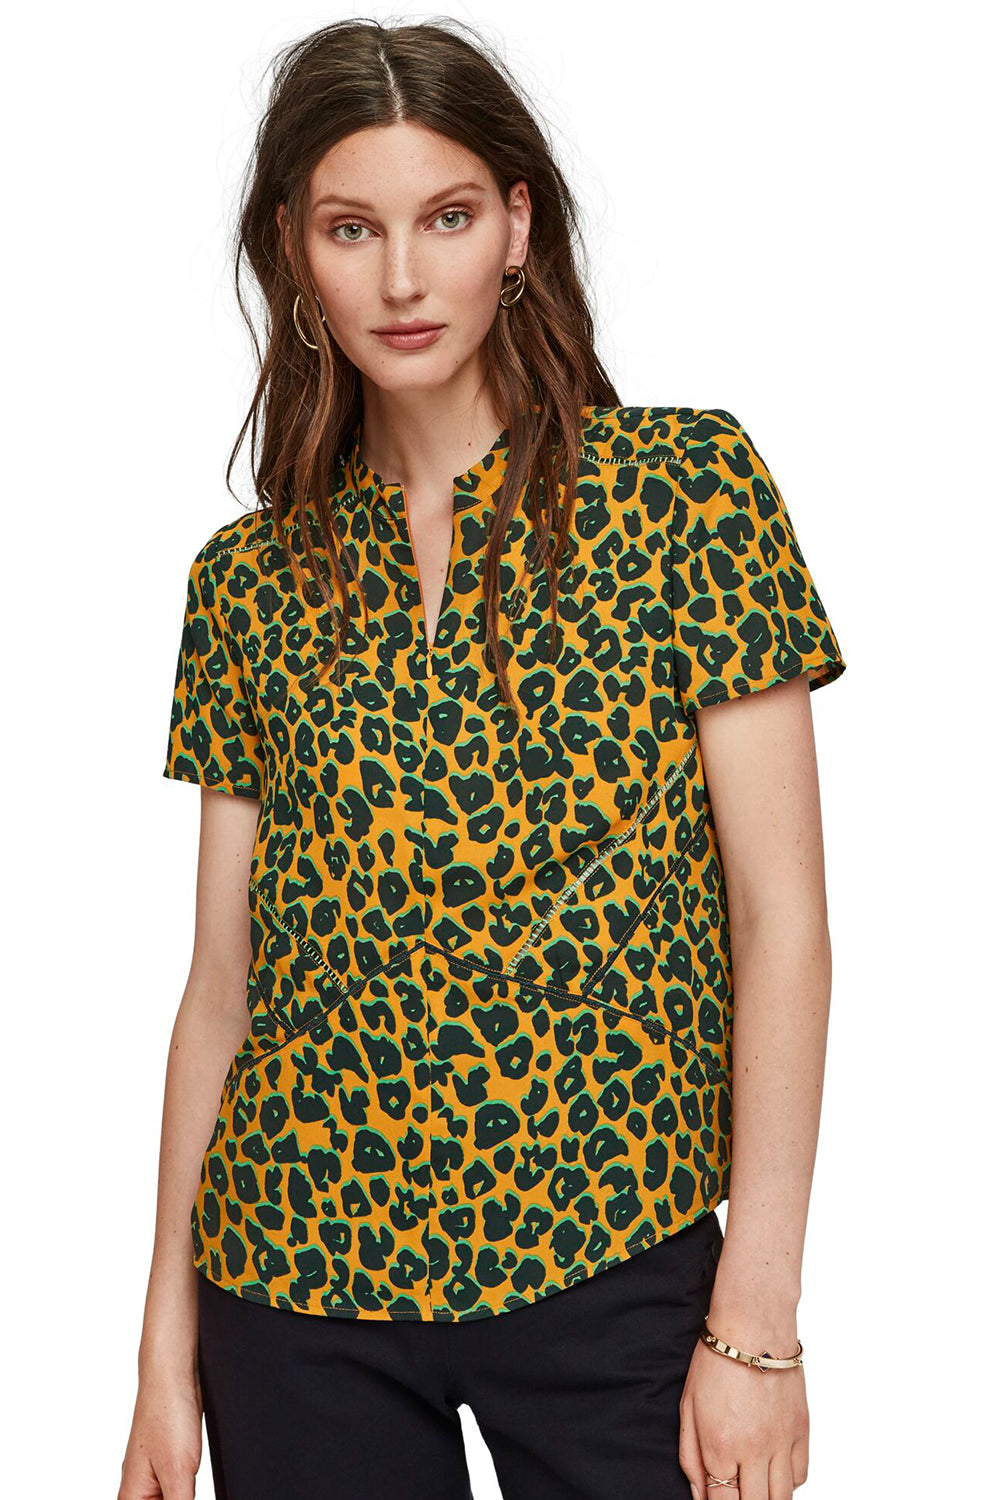 Maison Scotch / Short Sleeve Printed Top